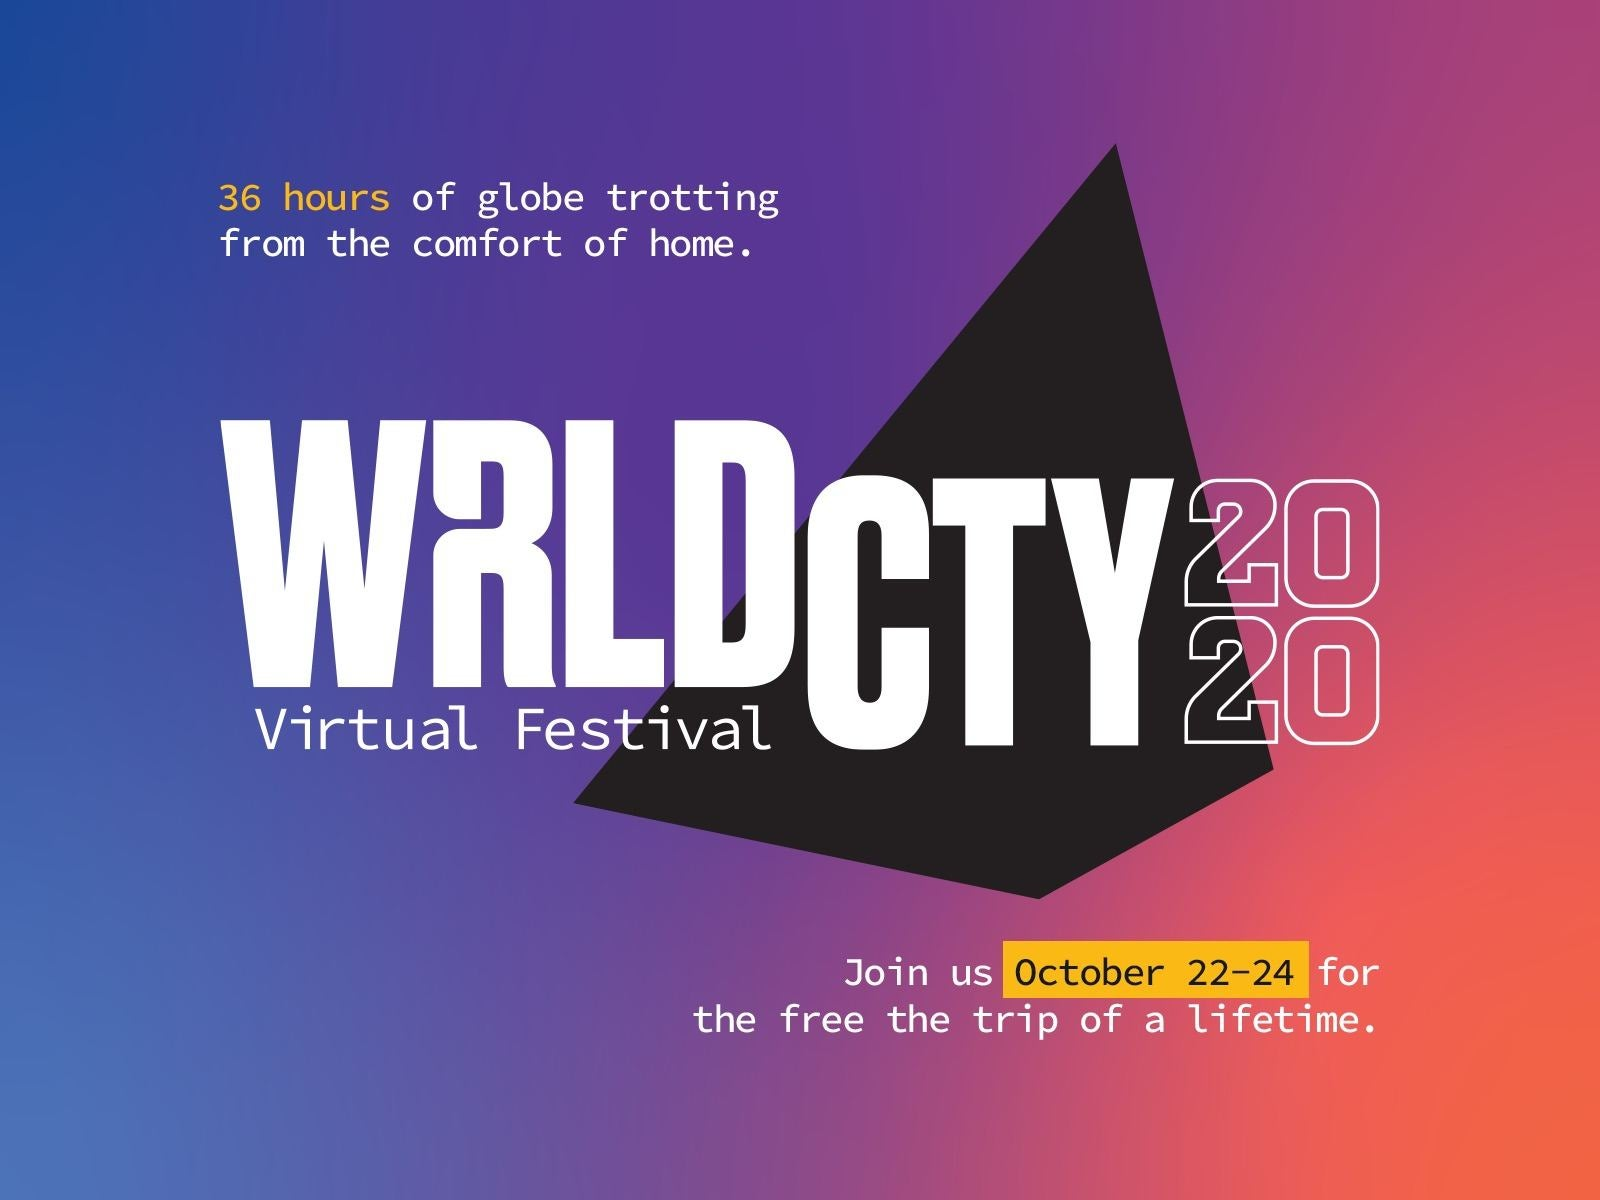 Main image for event titled WRLDCTY - The Planet's Largest Virtual Cities Conference (OPENING DAY)